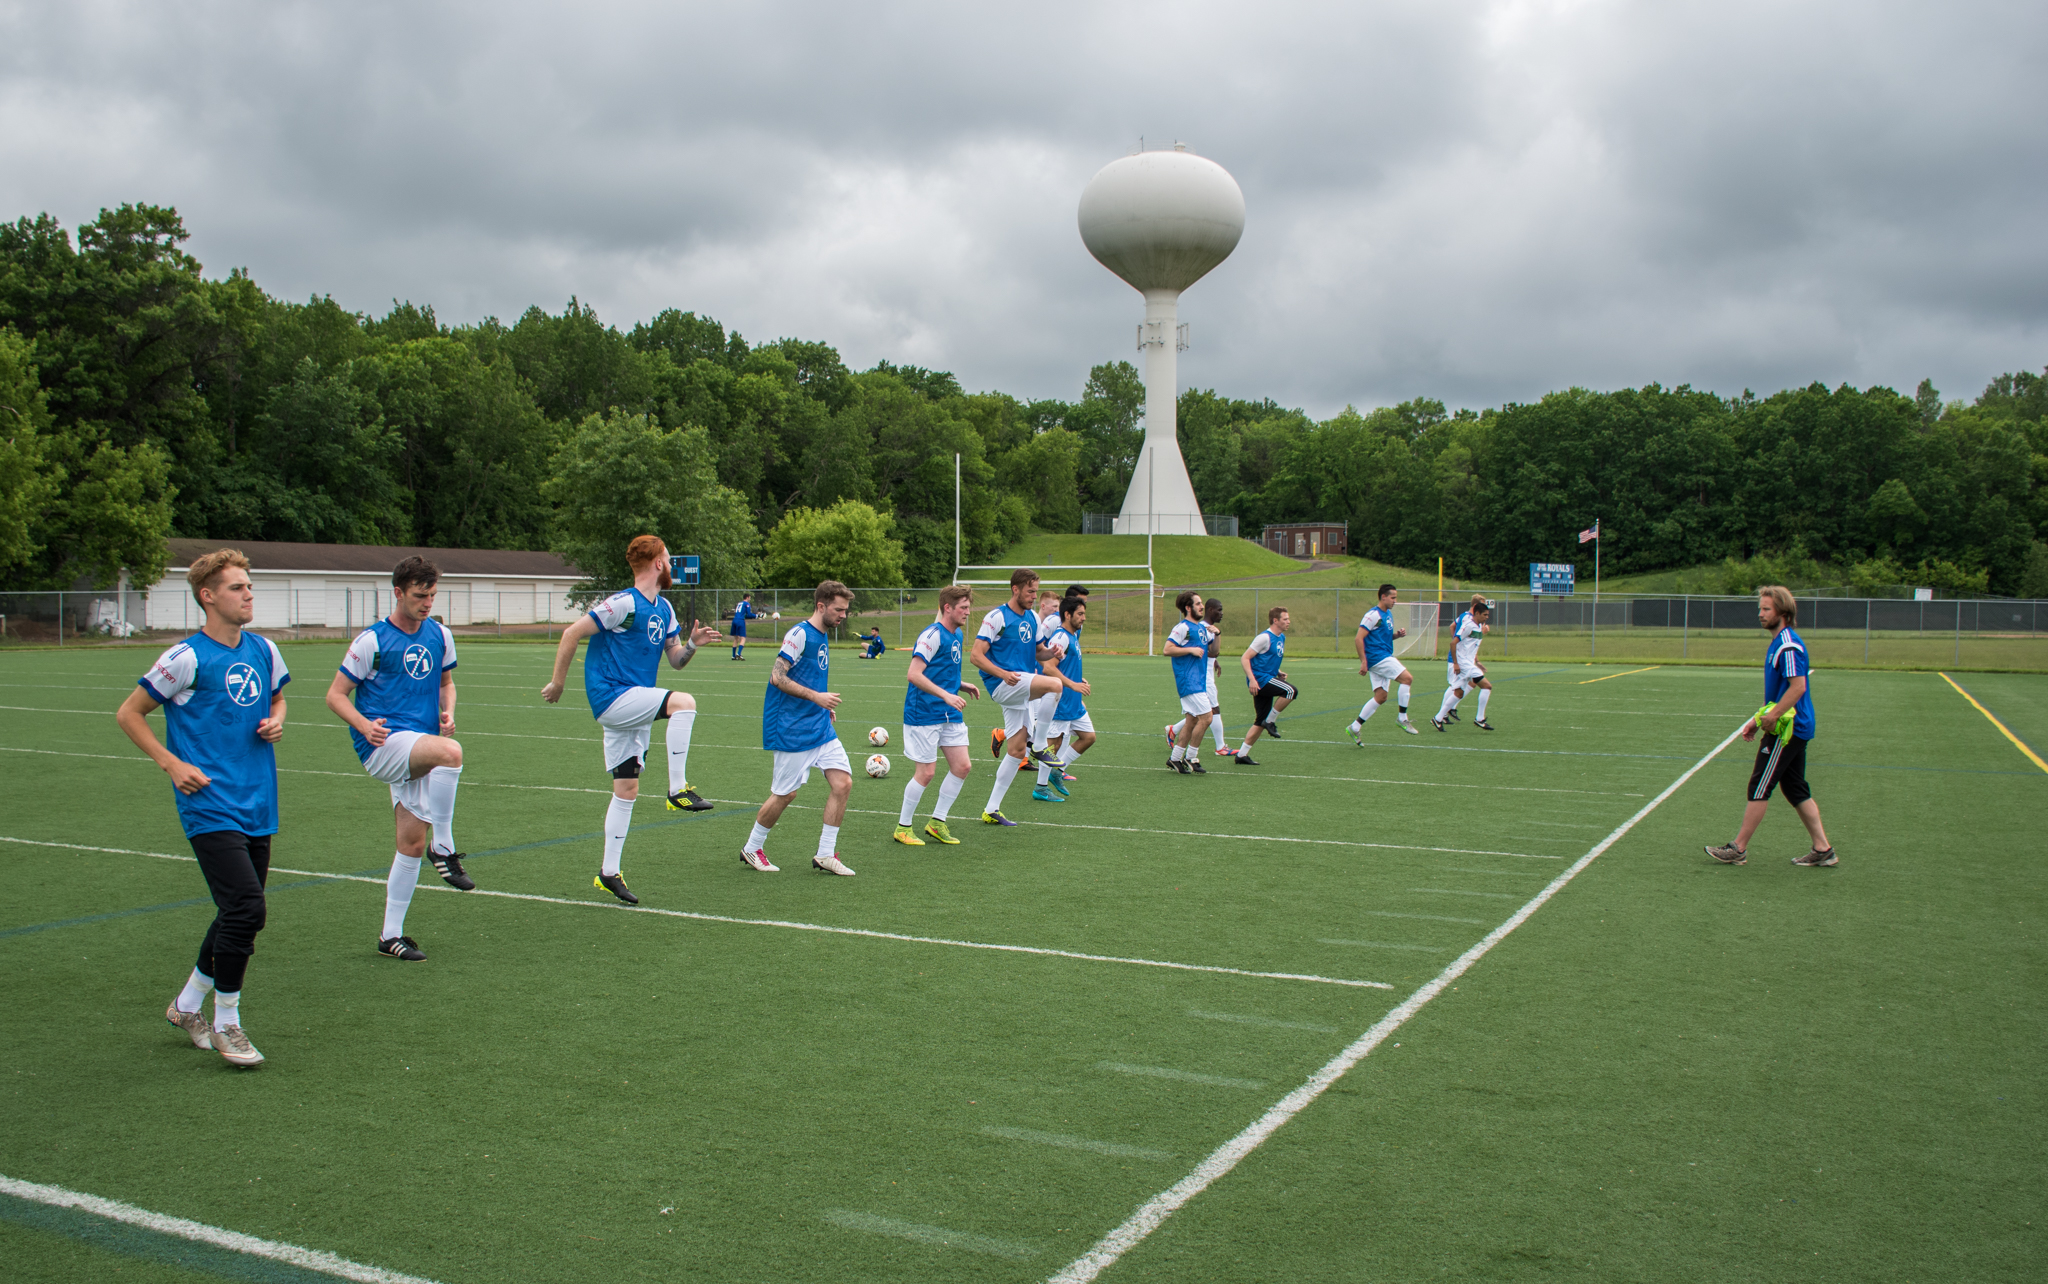 Duluth FC Face LaCrosse Aris - Match Preview